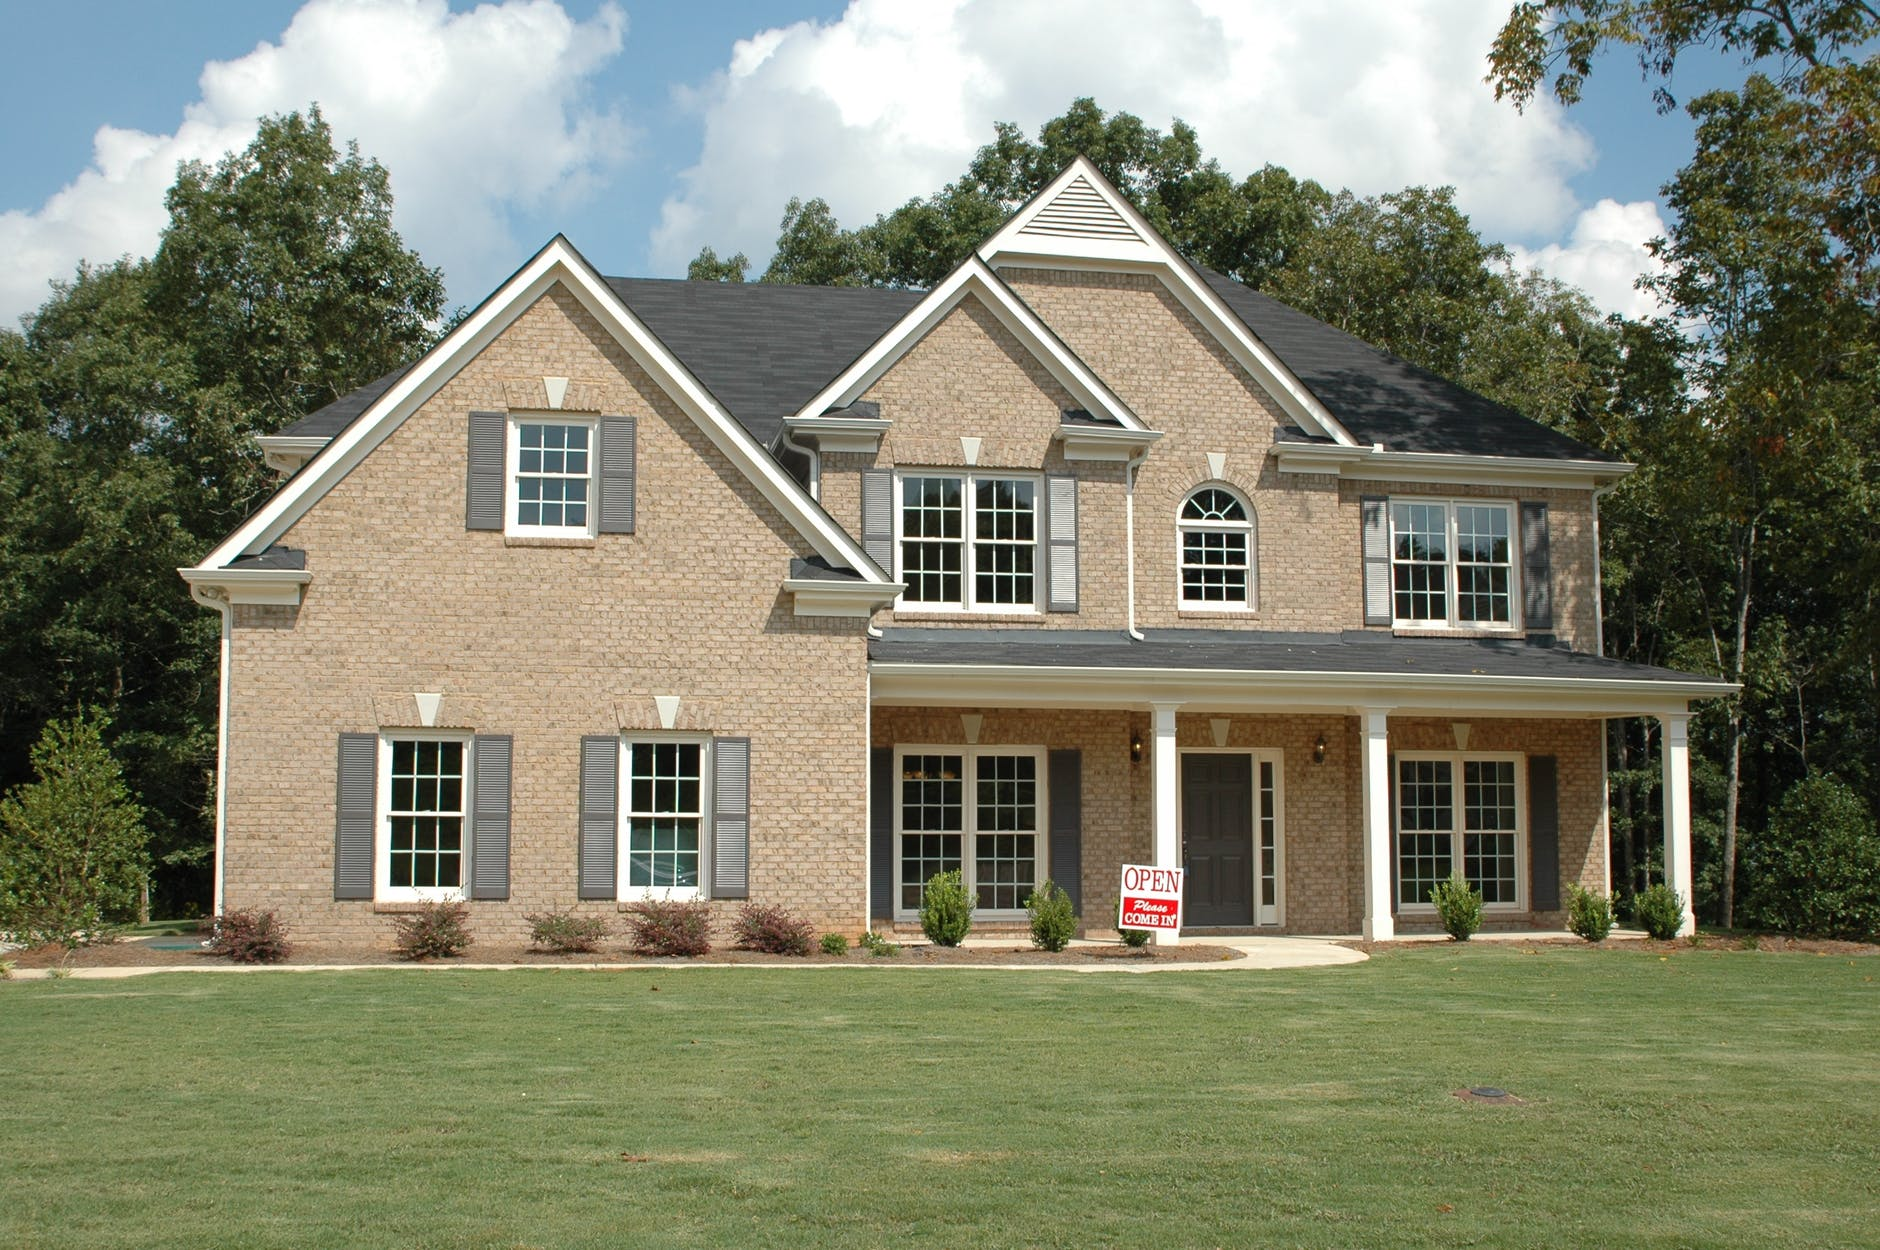 How to Find Your Dream Home When Inventory Is Low?